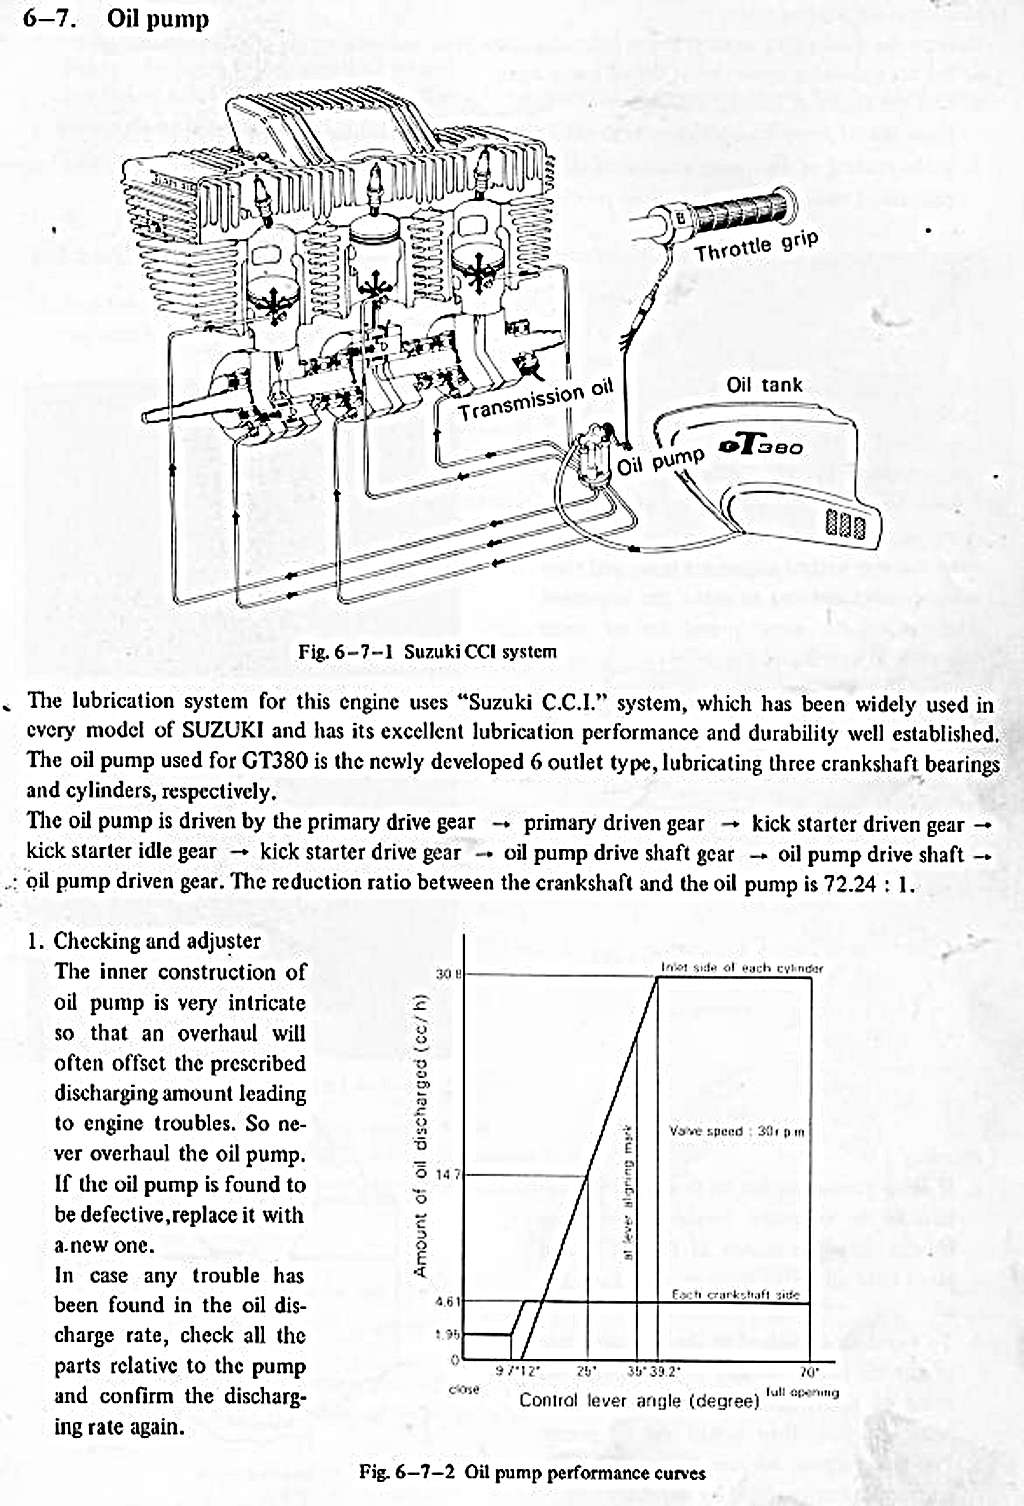 hight resolution of troubleshooting engine gt380 service manual troubleshooting engine suzuki gt380 wiring diagram